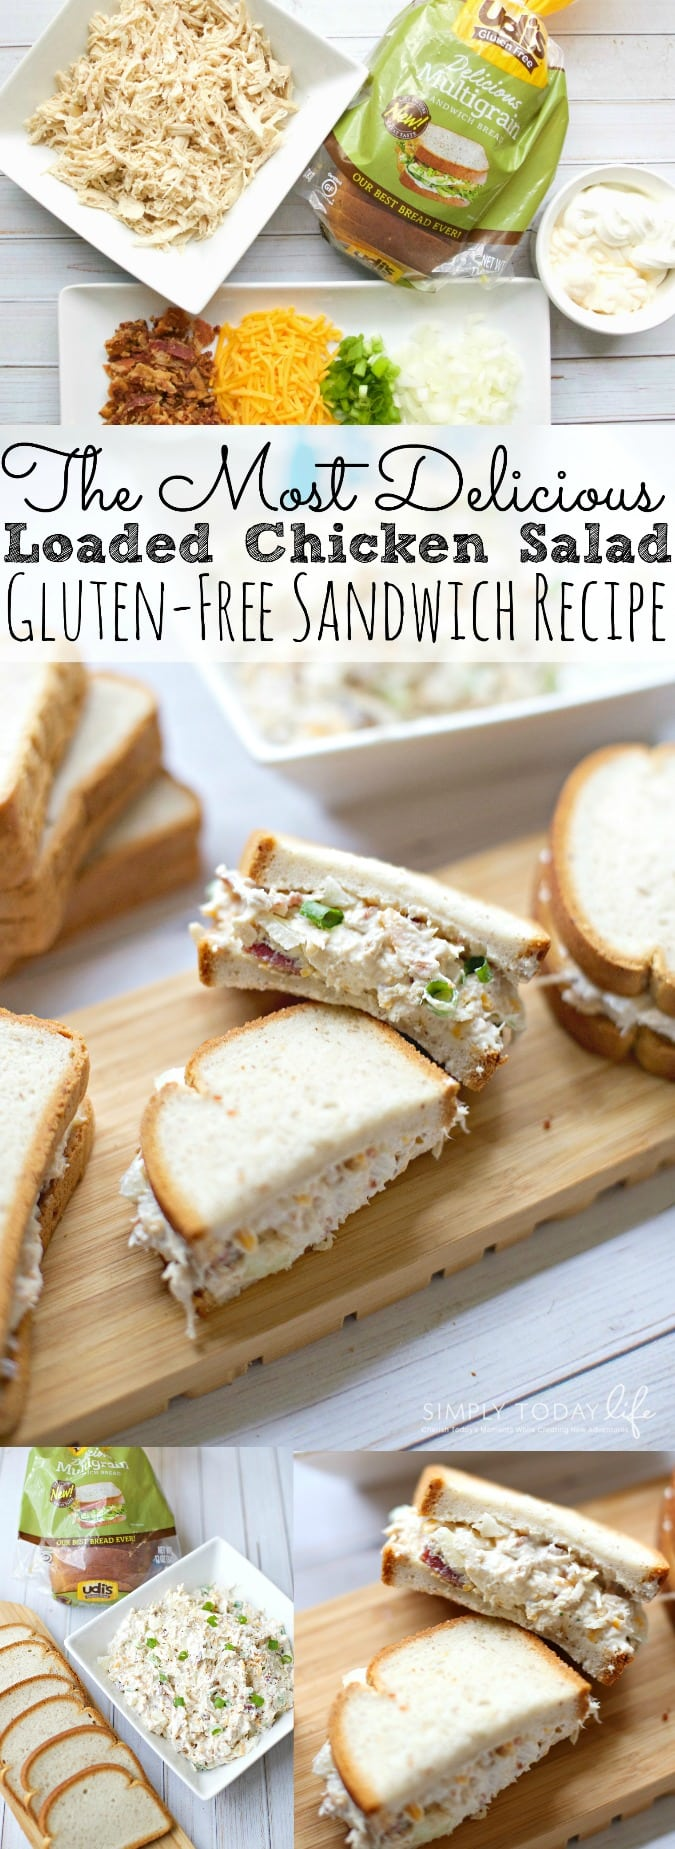 Looking for a delicious and easy chicken salad recipe? Check out The Most Delicious Loaded Chicken Salad Sandwich Gluten Free Recipe your family will love! It's the perfect recipe for picnic and barbeques for Spring and Summer! - simplytodaylife.com